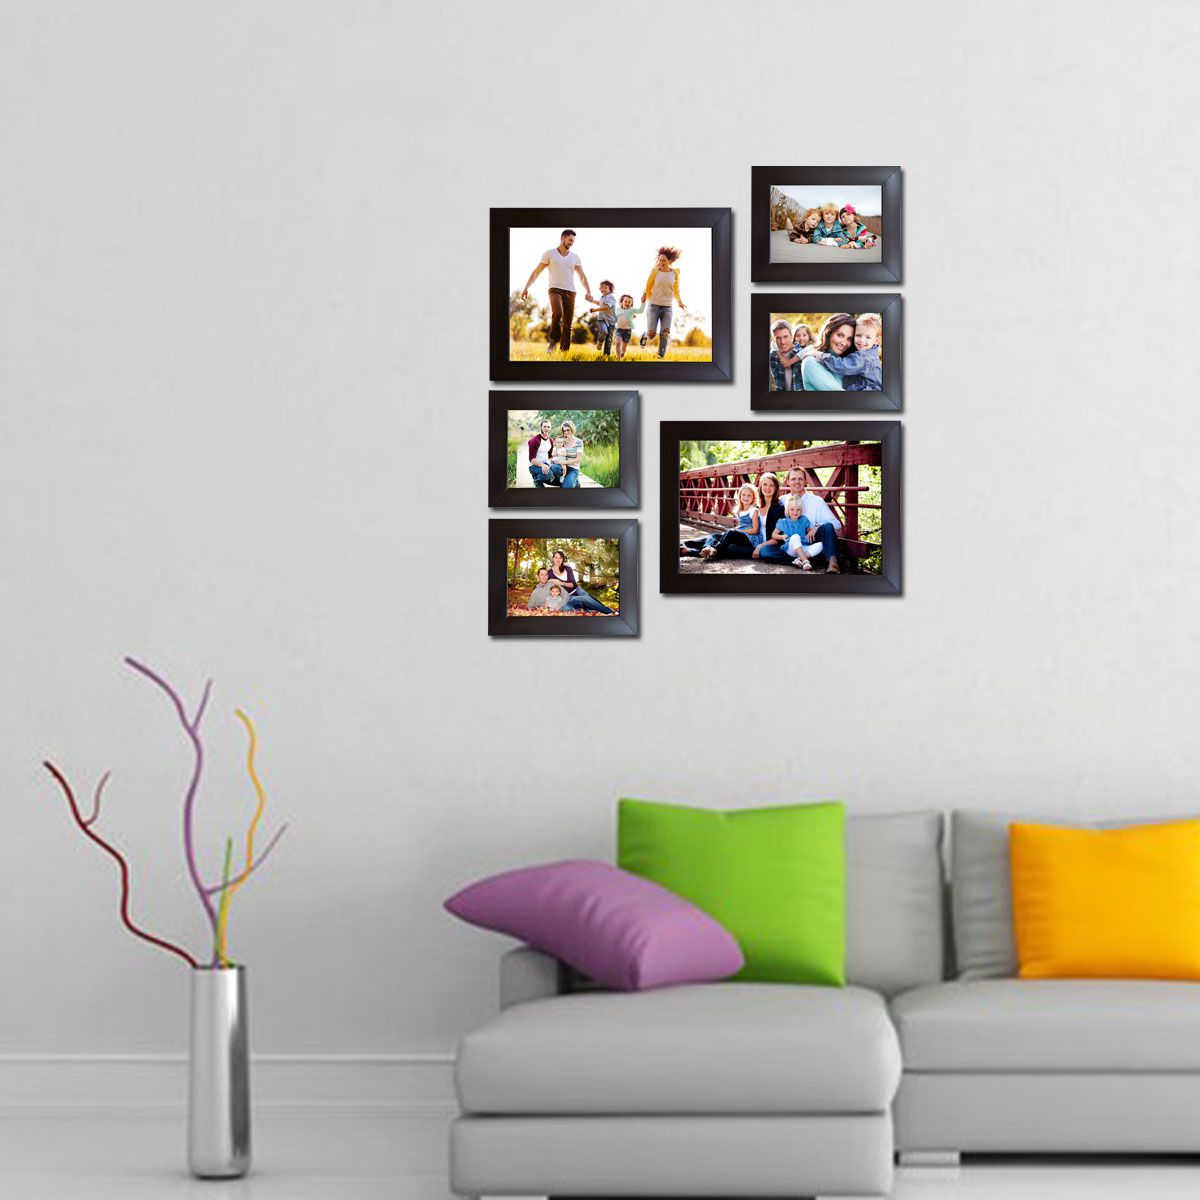 Decora Acrylic Brown Photo Frame Sets - Pack of 6